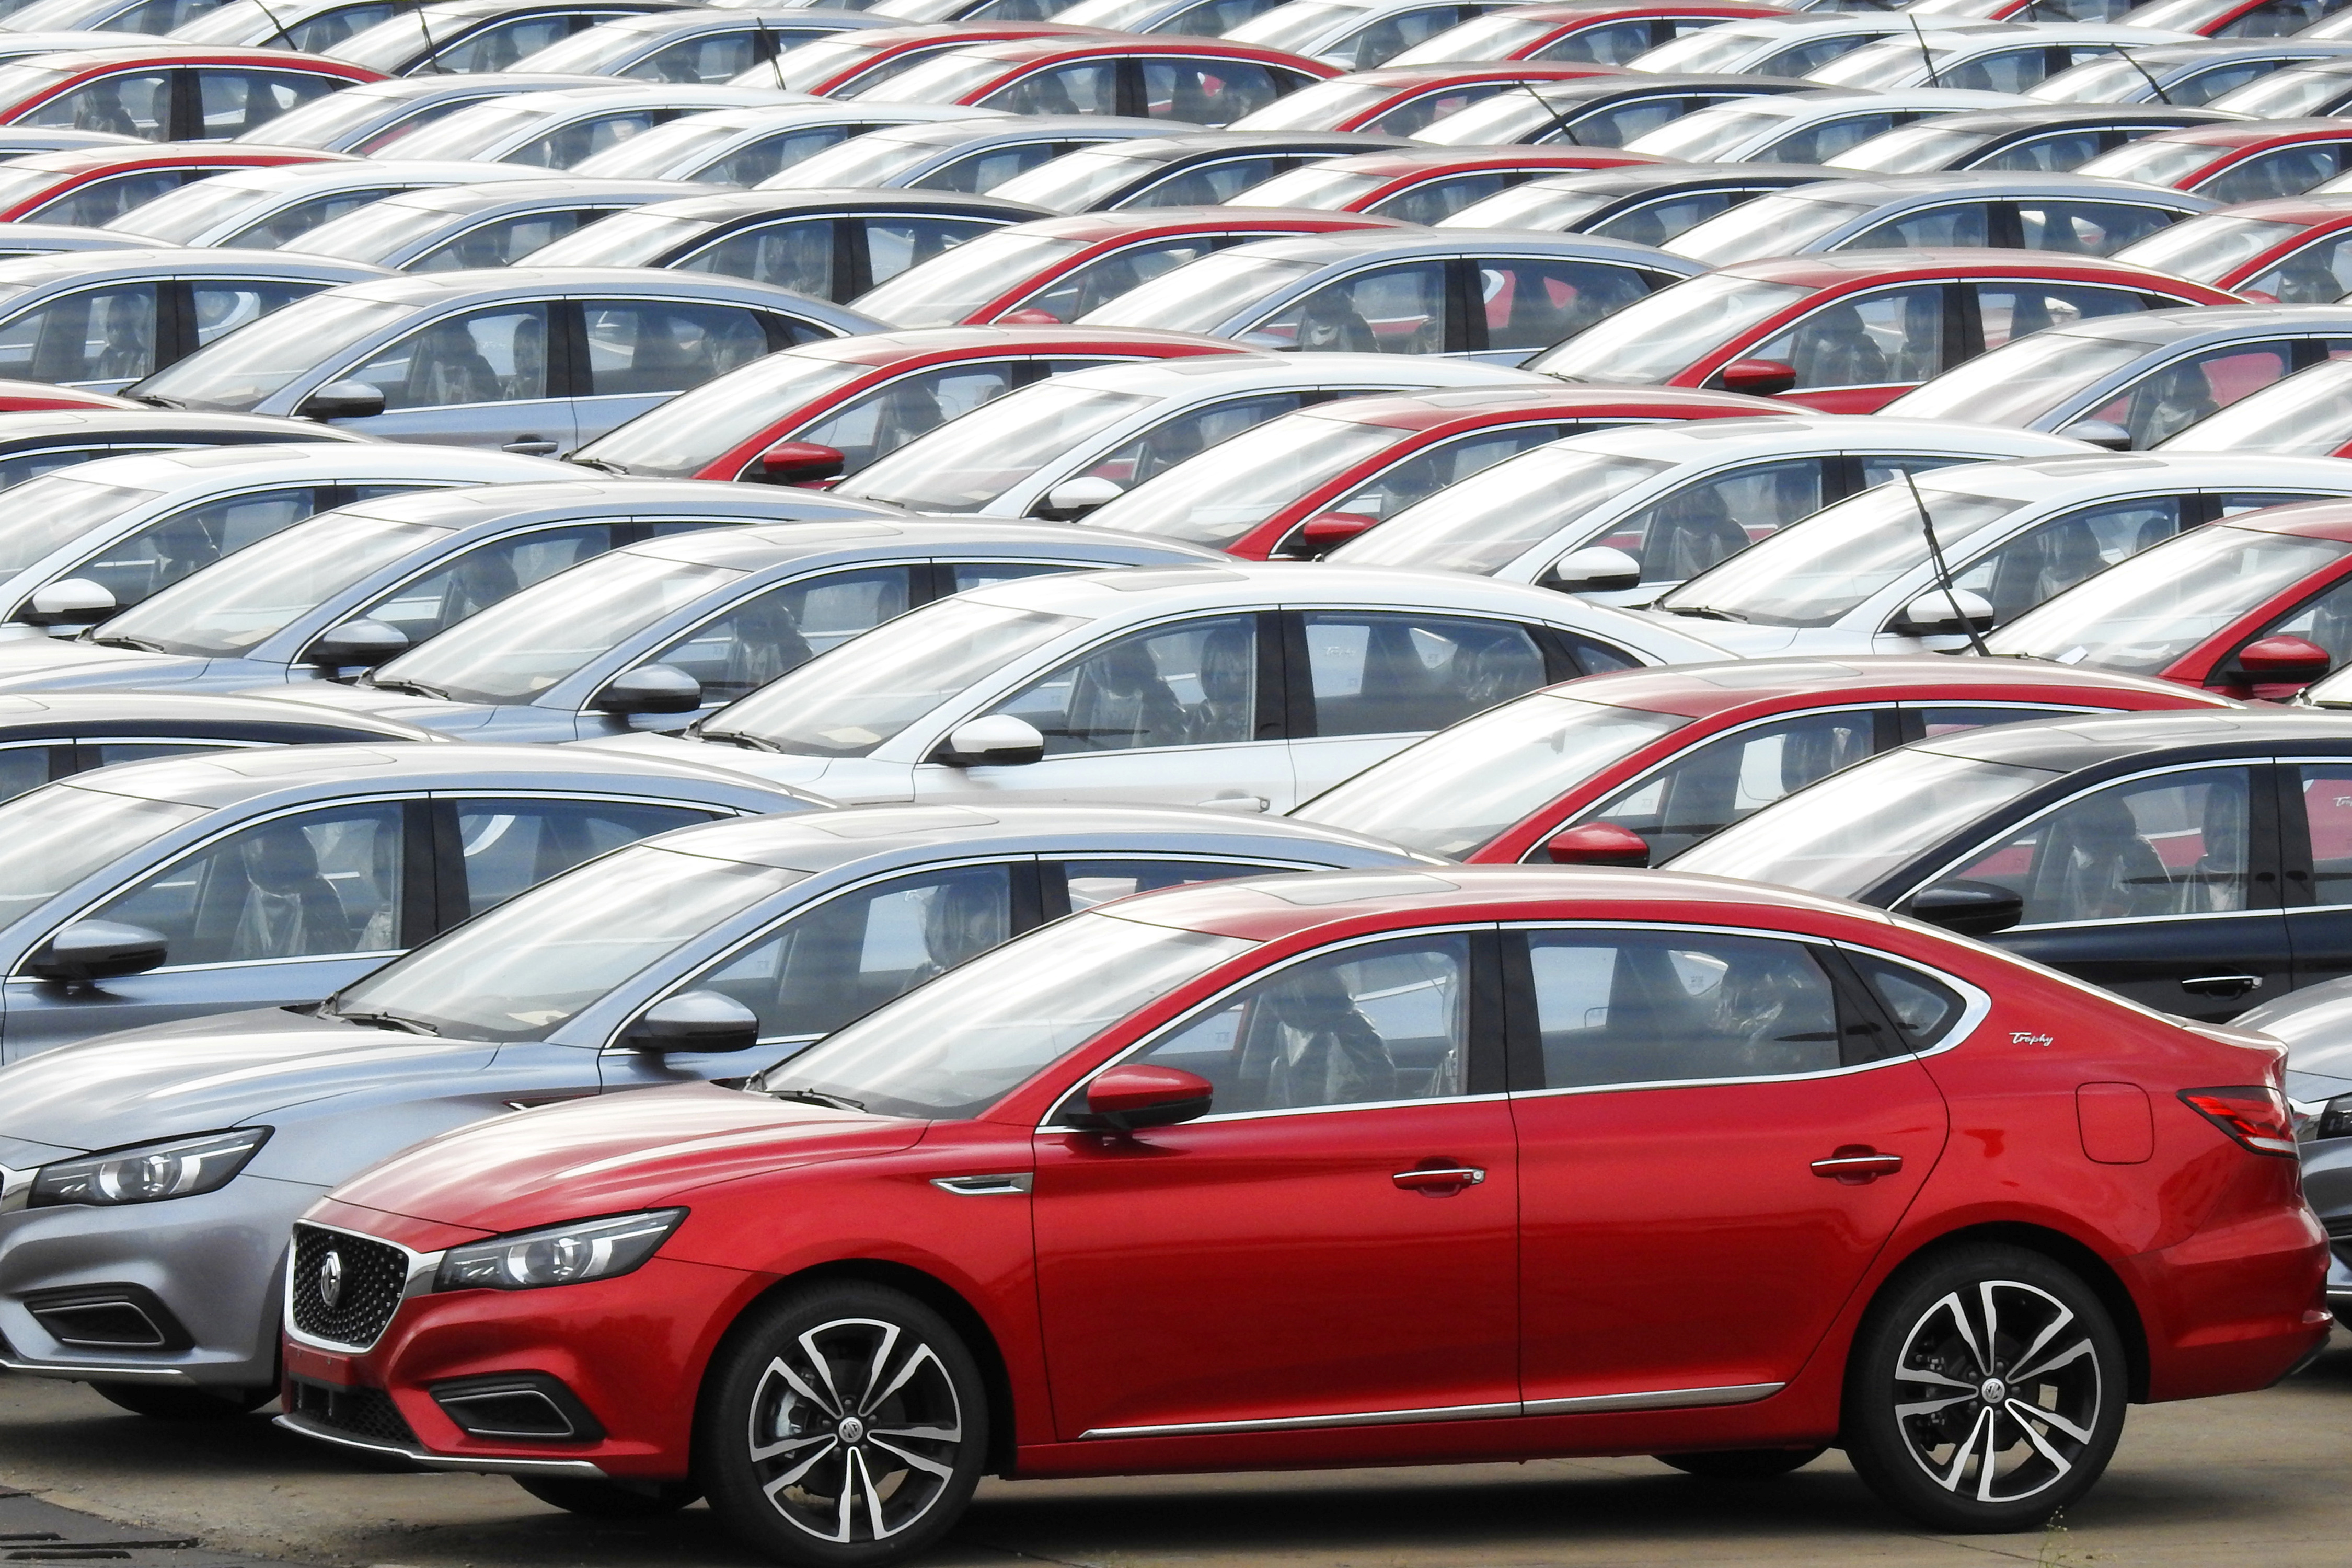 Cars for export wait to be loaded onto cargo vessels at a port in Lianyungang, Jiangsu province, China October 14, 2019. REUTERS/Stringer